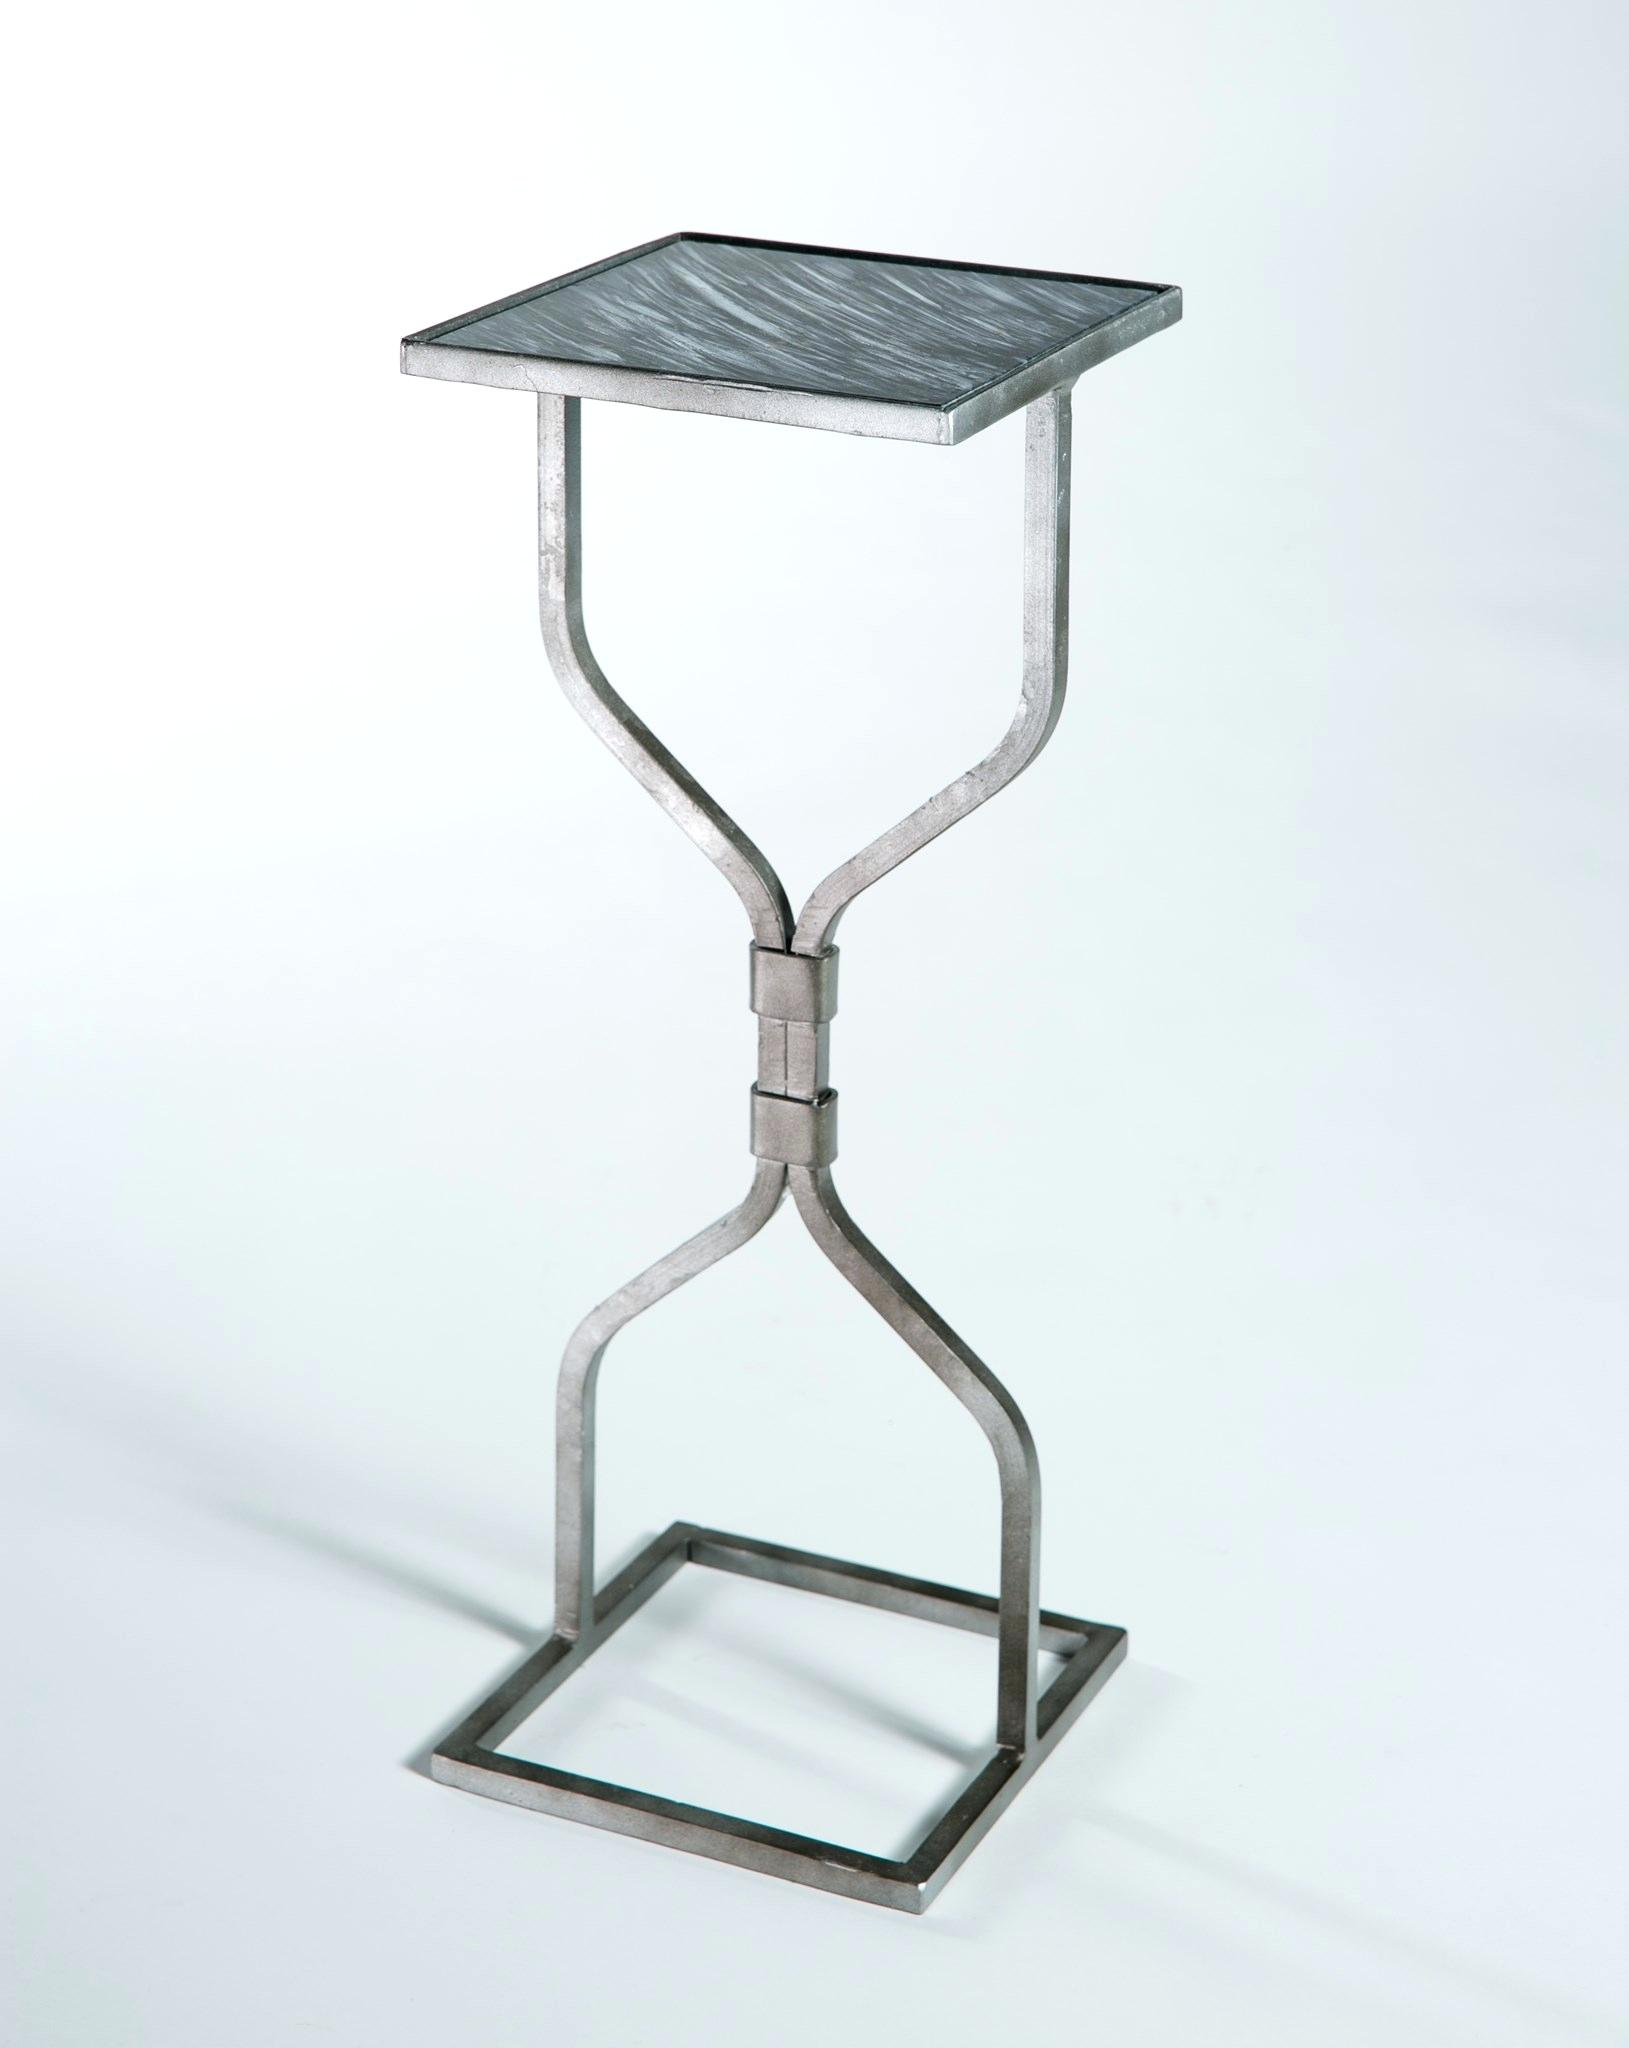 hourglass end table base chathamil info accent antique silver with glass top mythic target metal livingroom side tables inexpensive patio furniture storage rustic wood slim